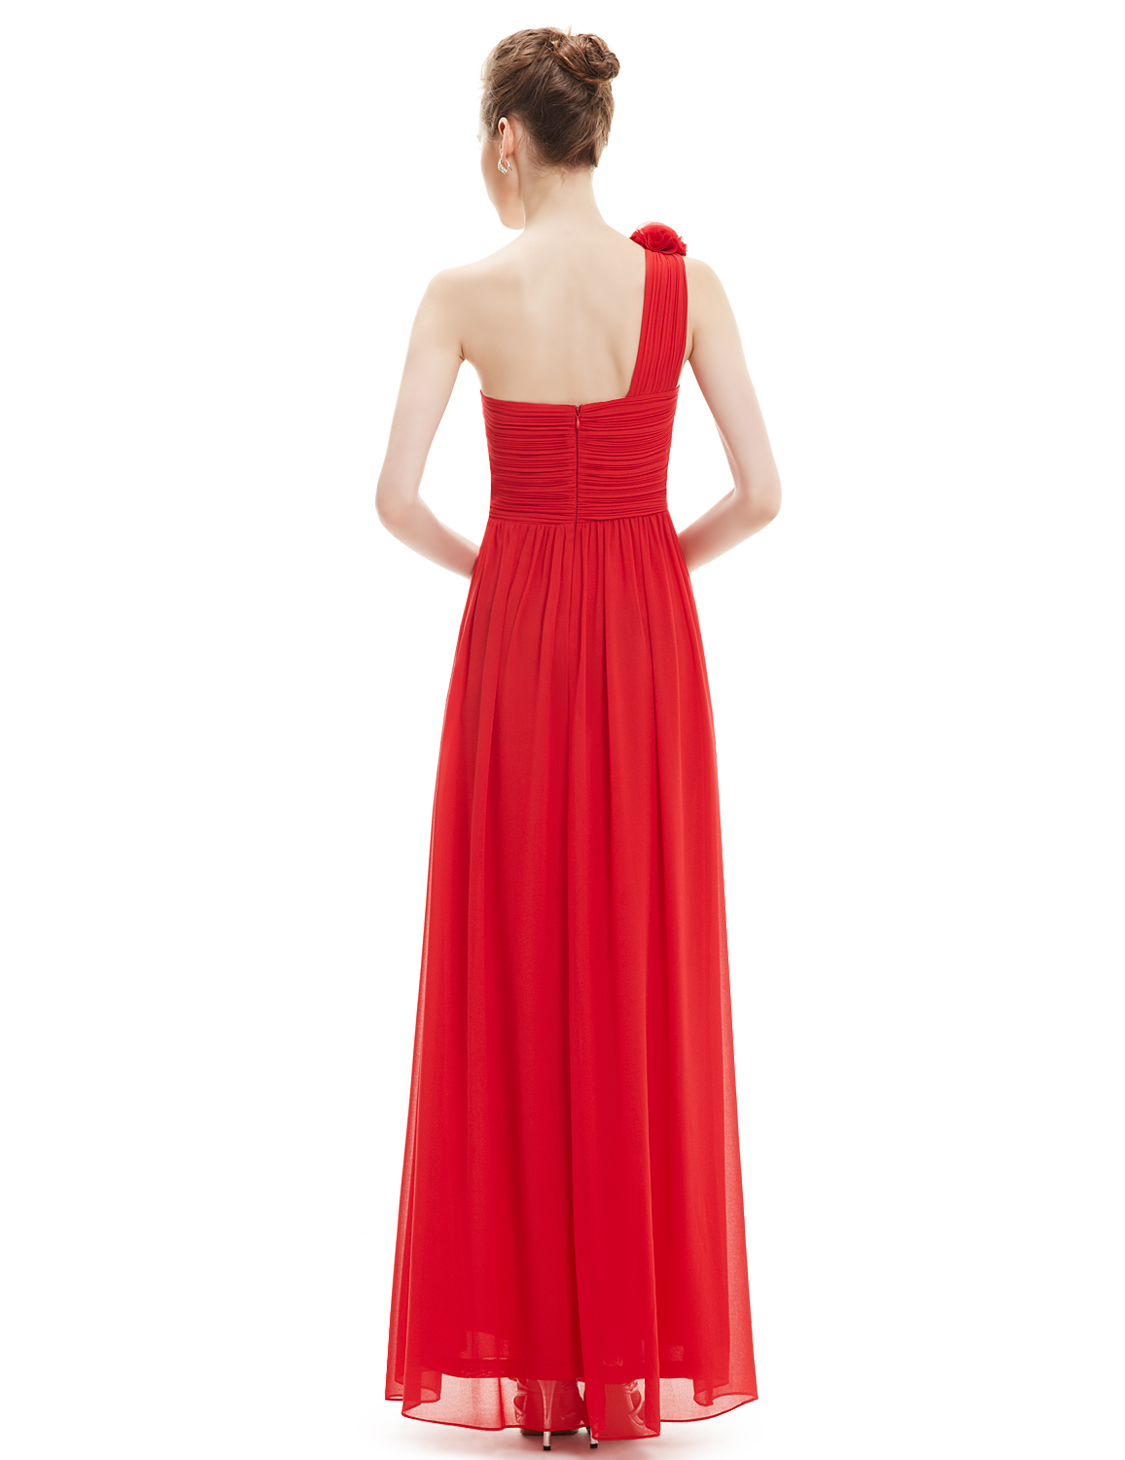 f665780d3c3 ... Ever-Pretty One Shoulder Bridesmaid Dress Long Prom Evening Formal  Formal Formal Dress 08237 16d866 ...